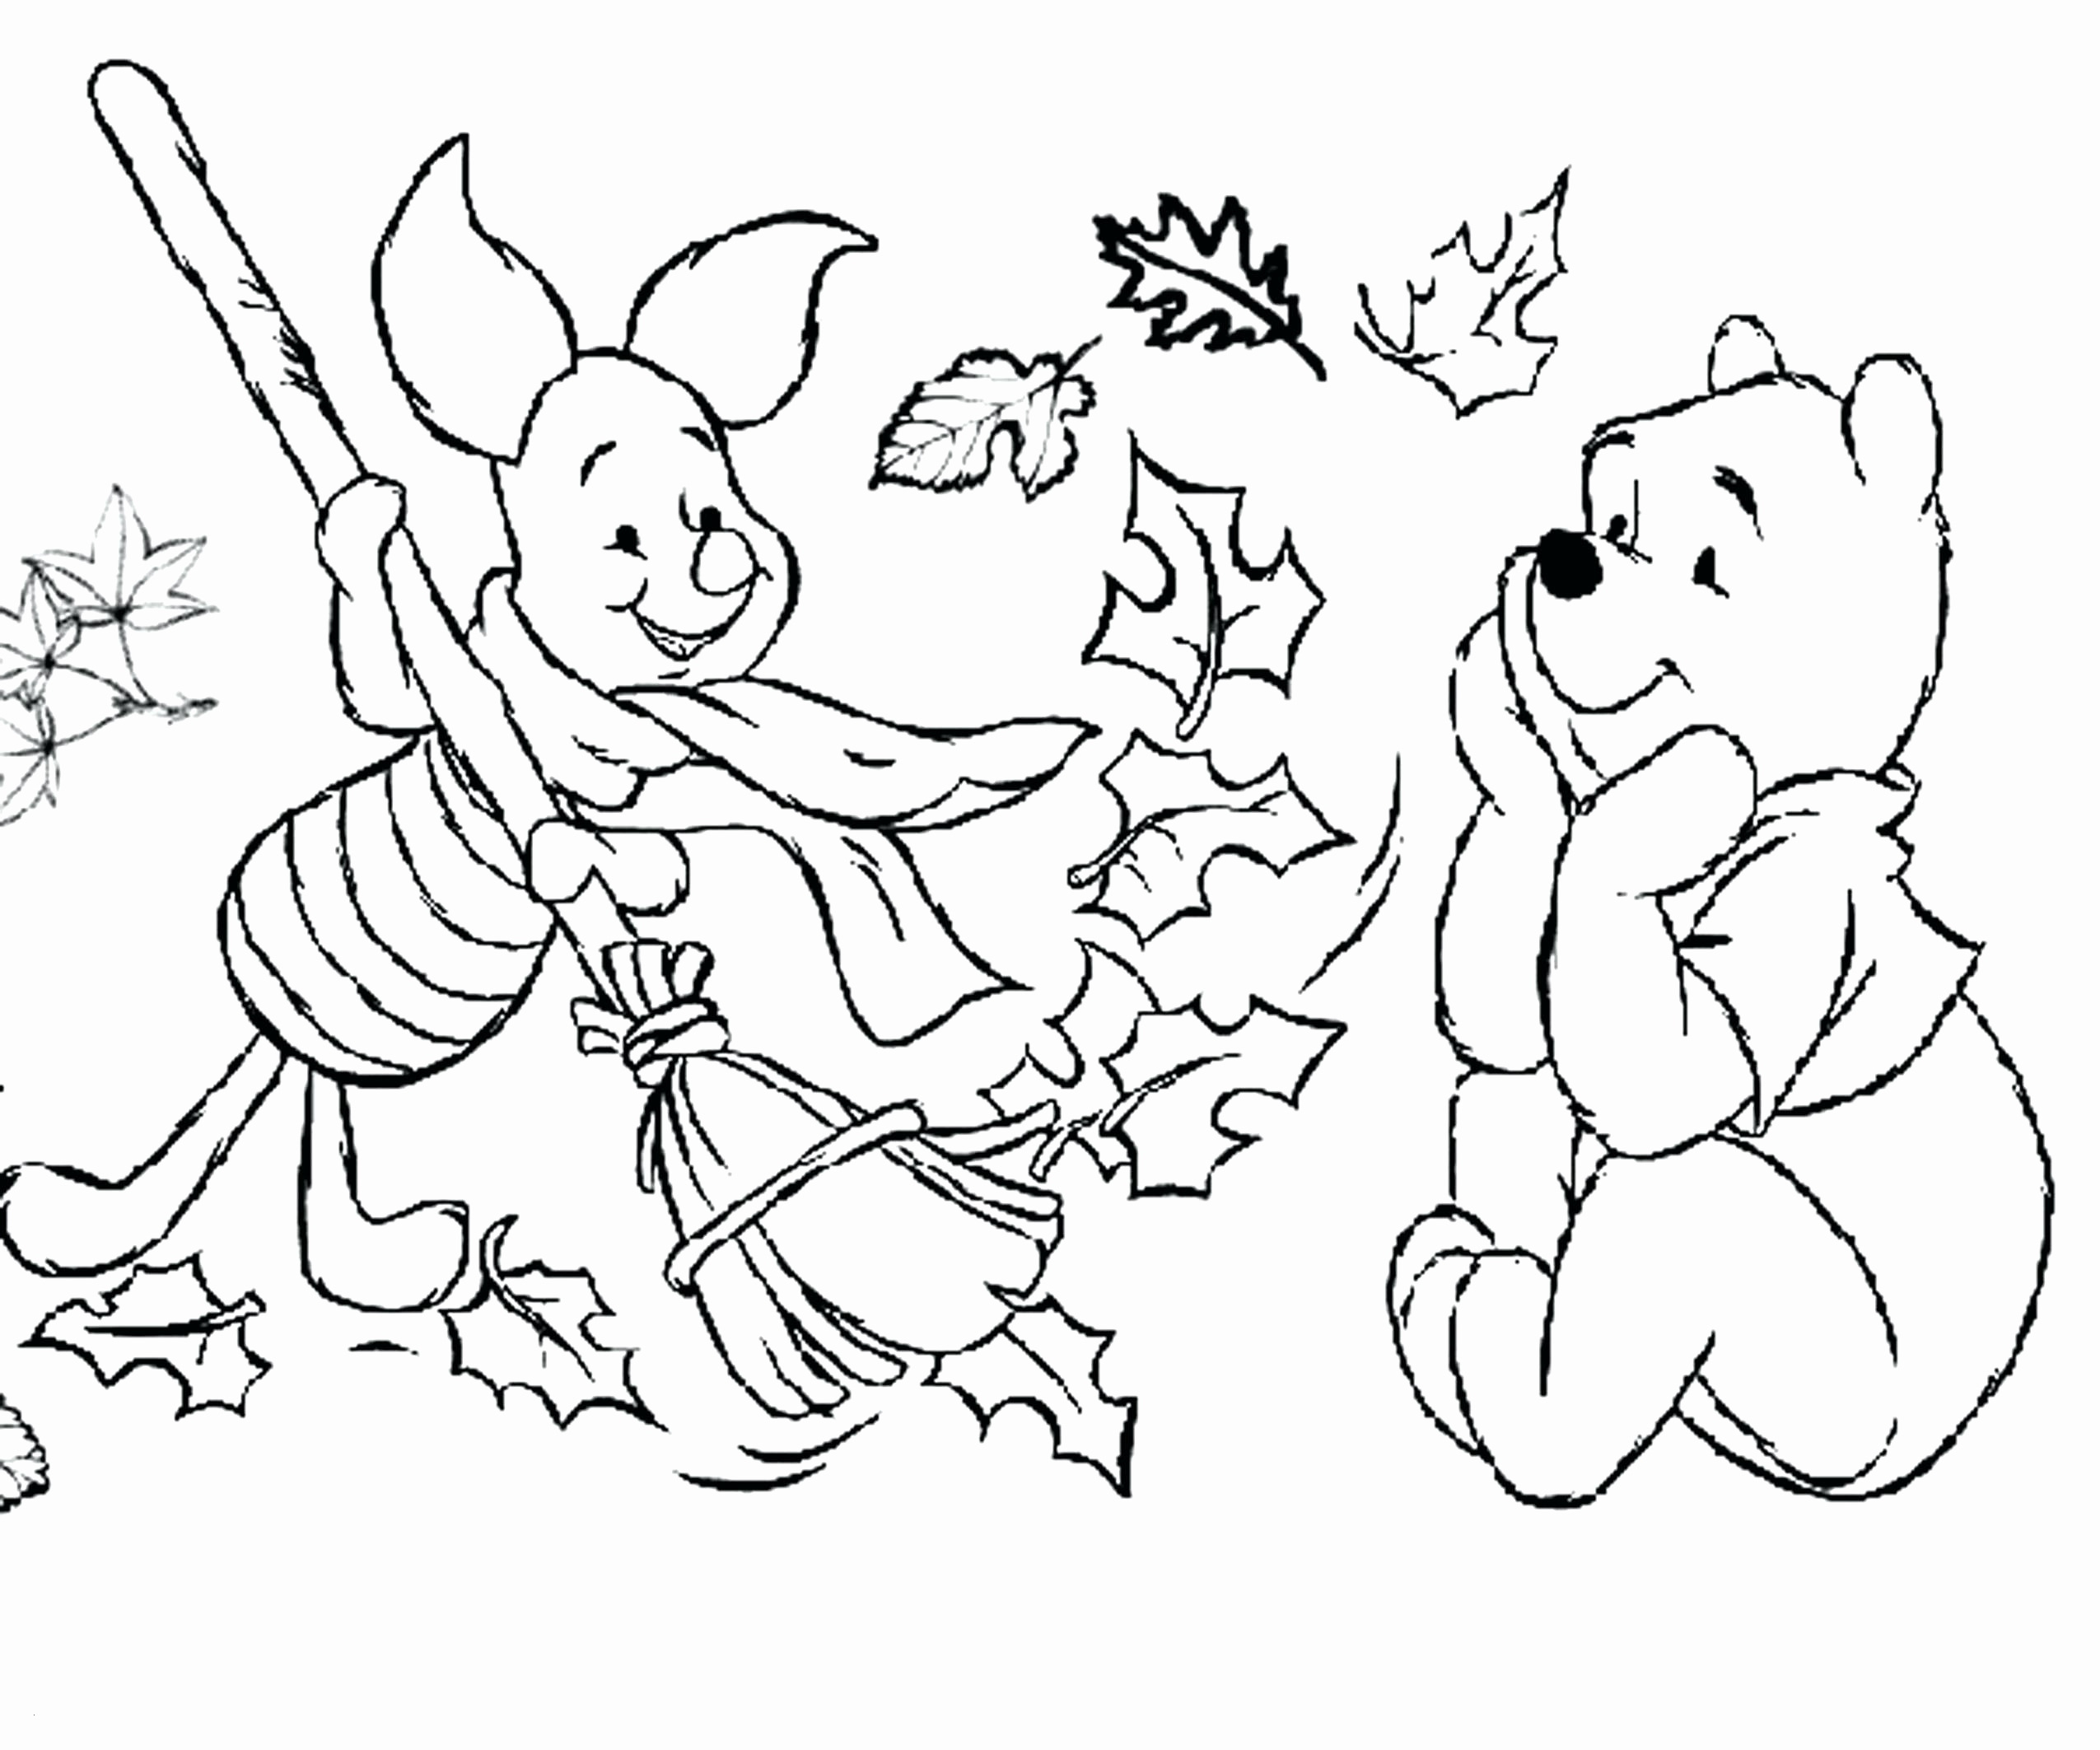 25 Free Bible Coloring Pages Kids Download - Coloring Sheets